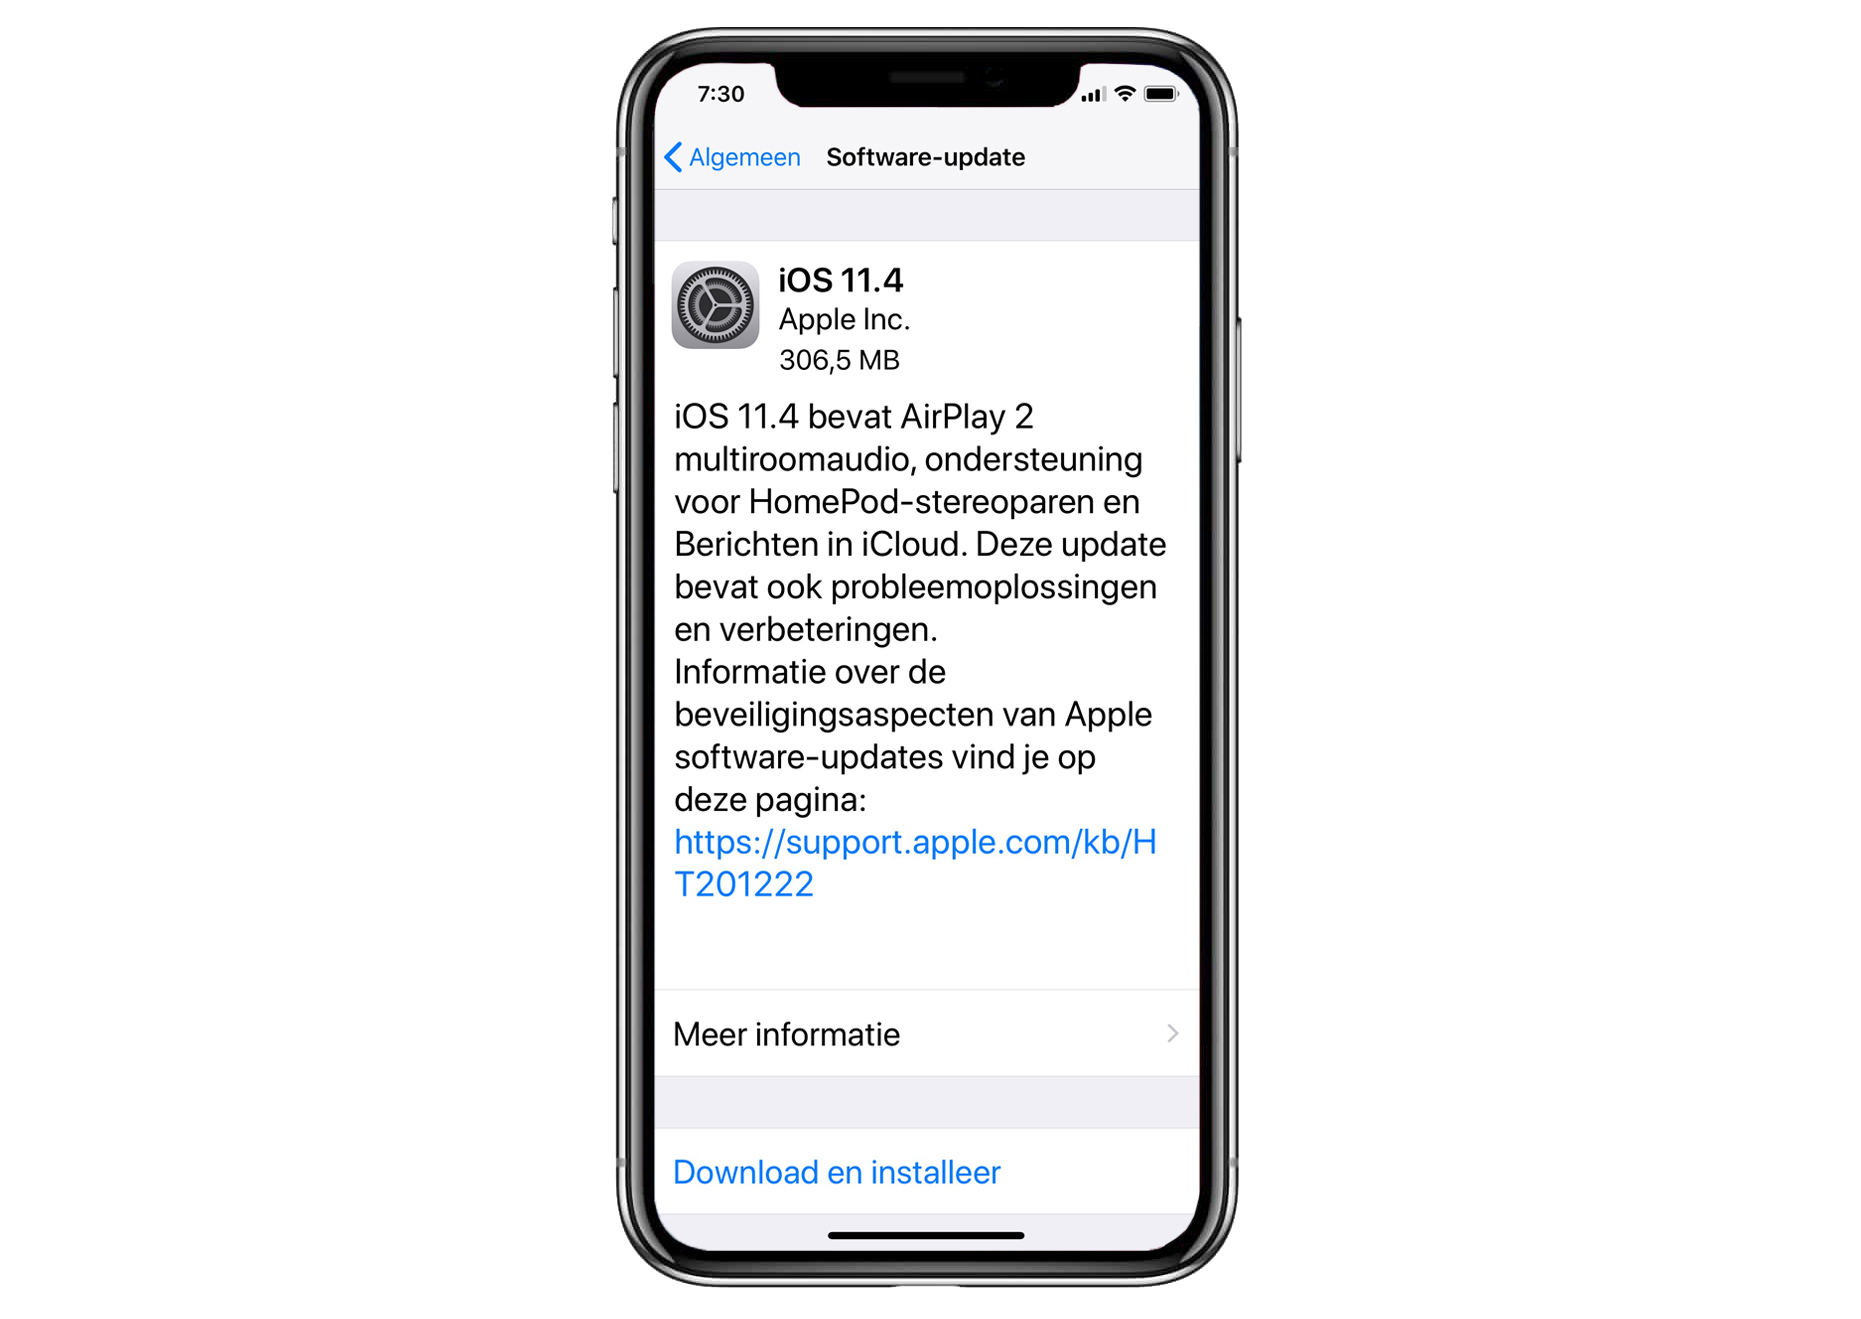 https://www.macfreak.nl/modules/news/images/zArt.iOS11.4.jpg